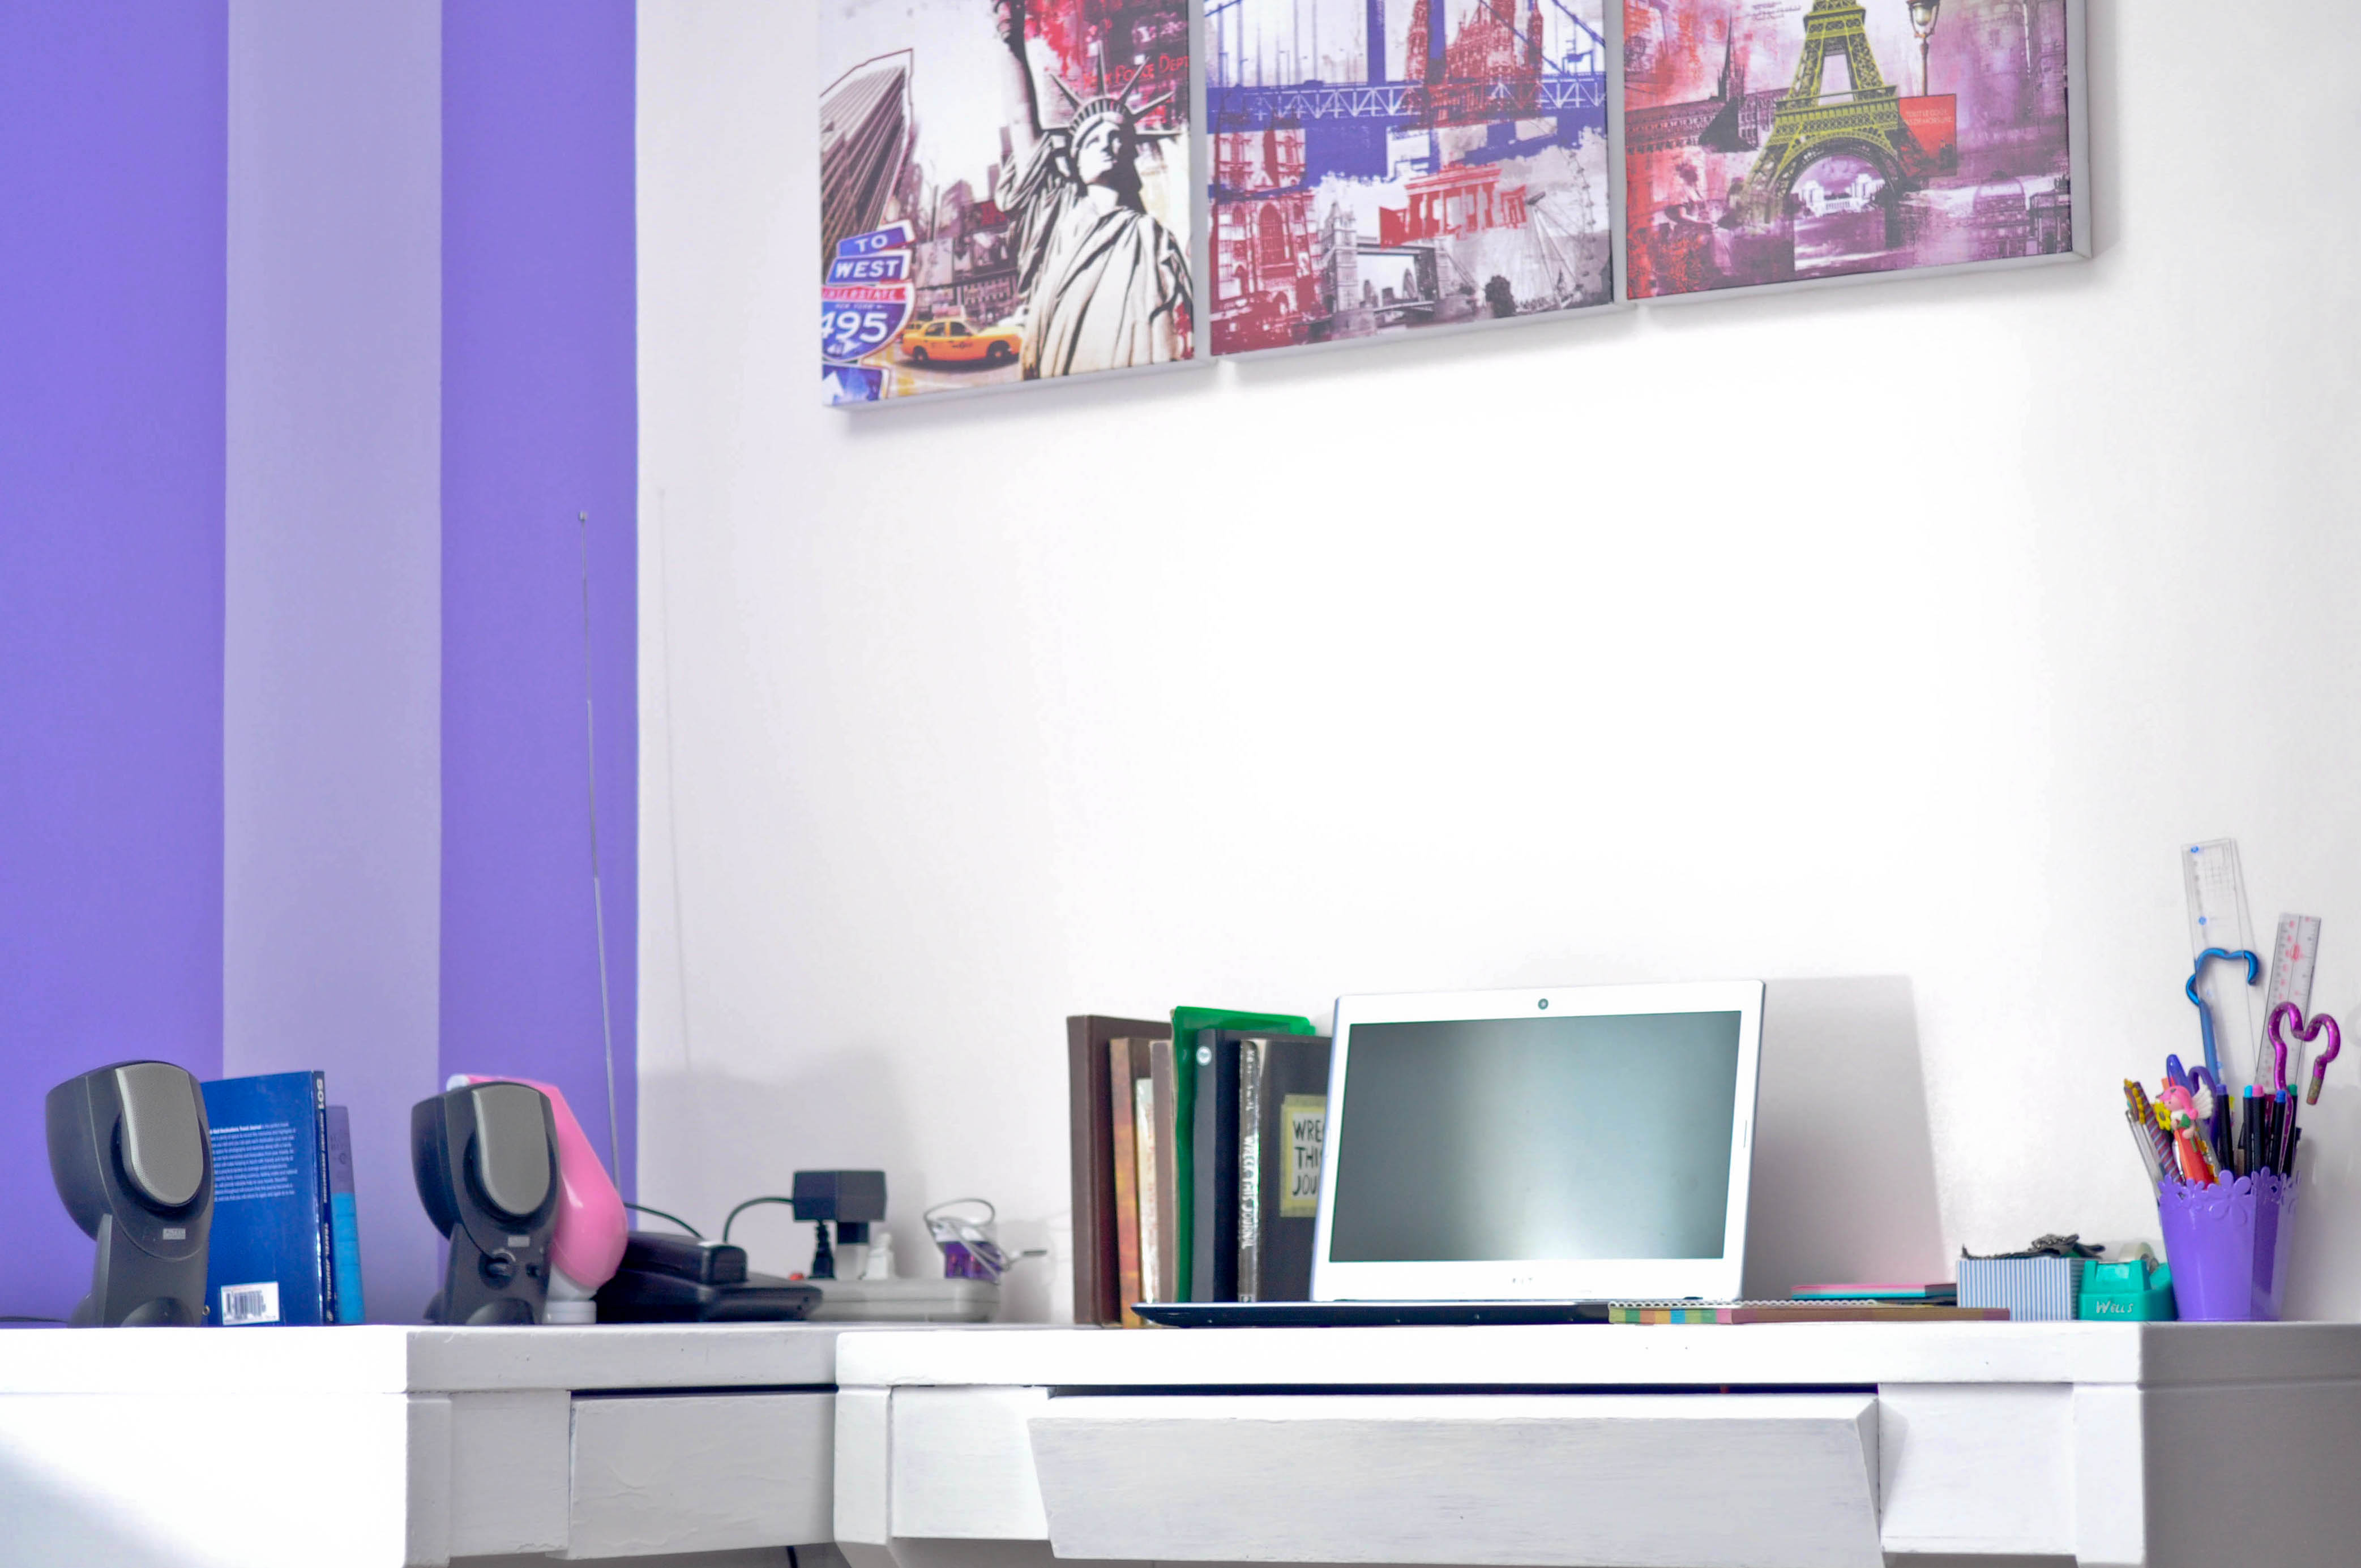 wall paint colors matching photo - 6